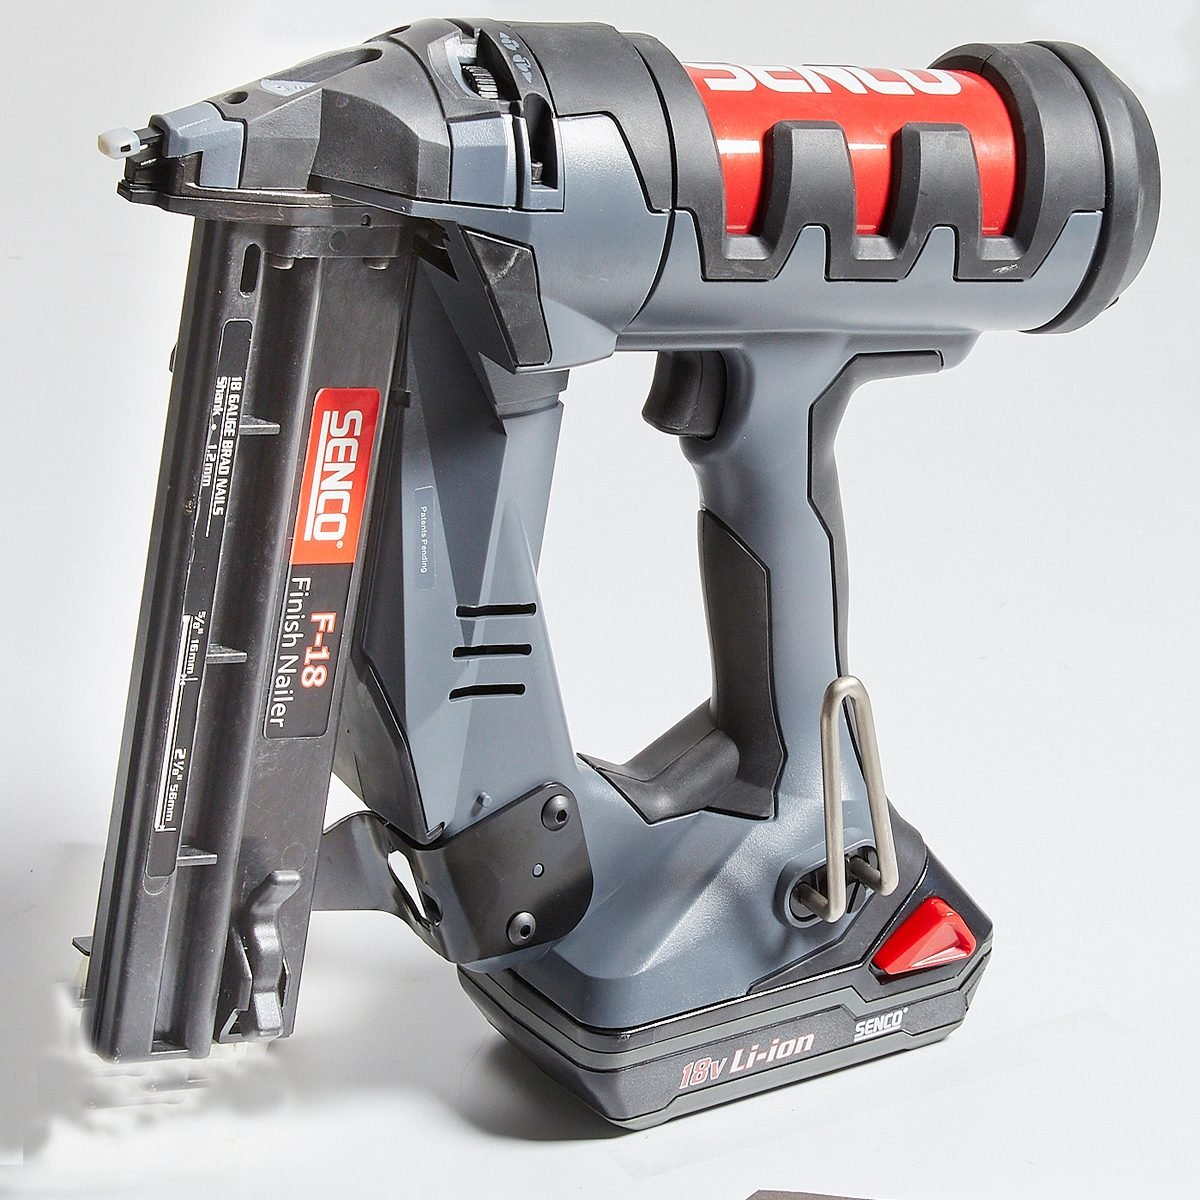 Senco Brad Nailer | Construction Pro Tips